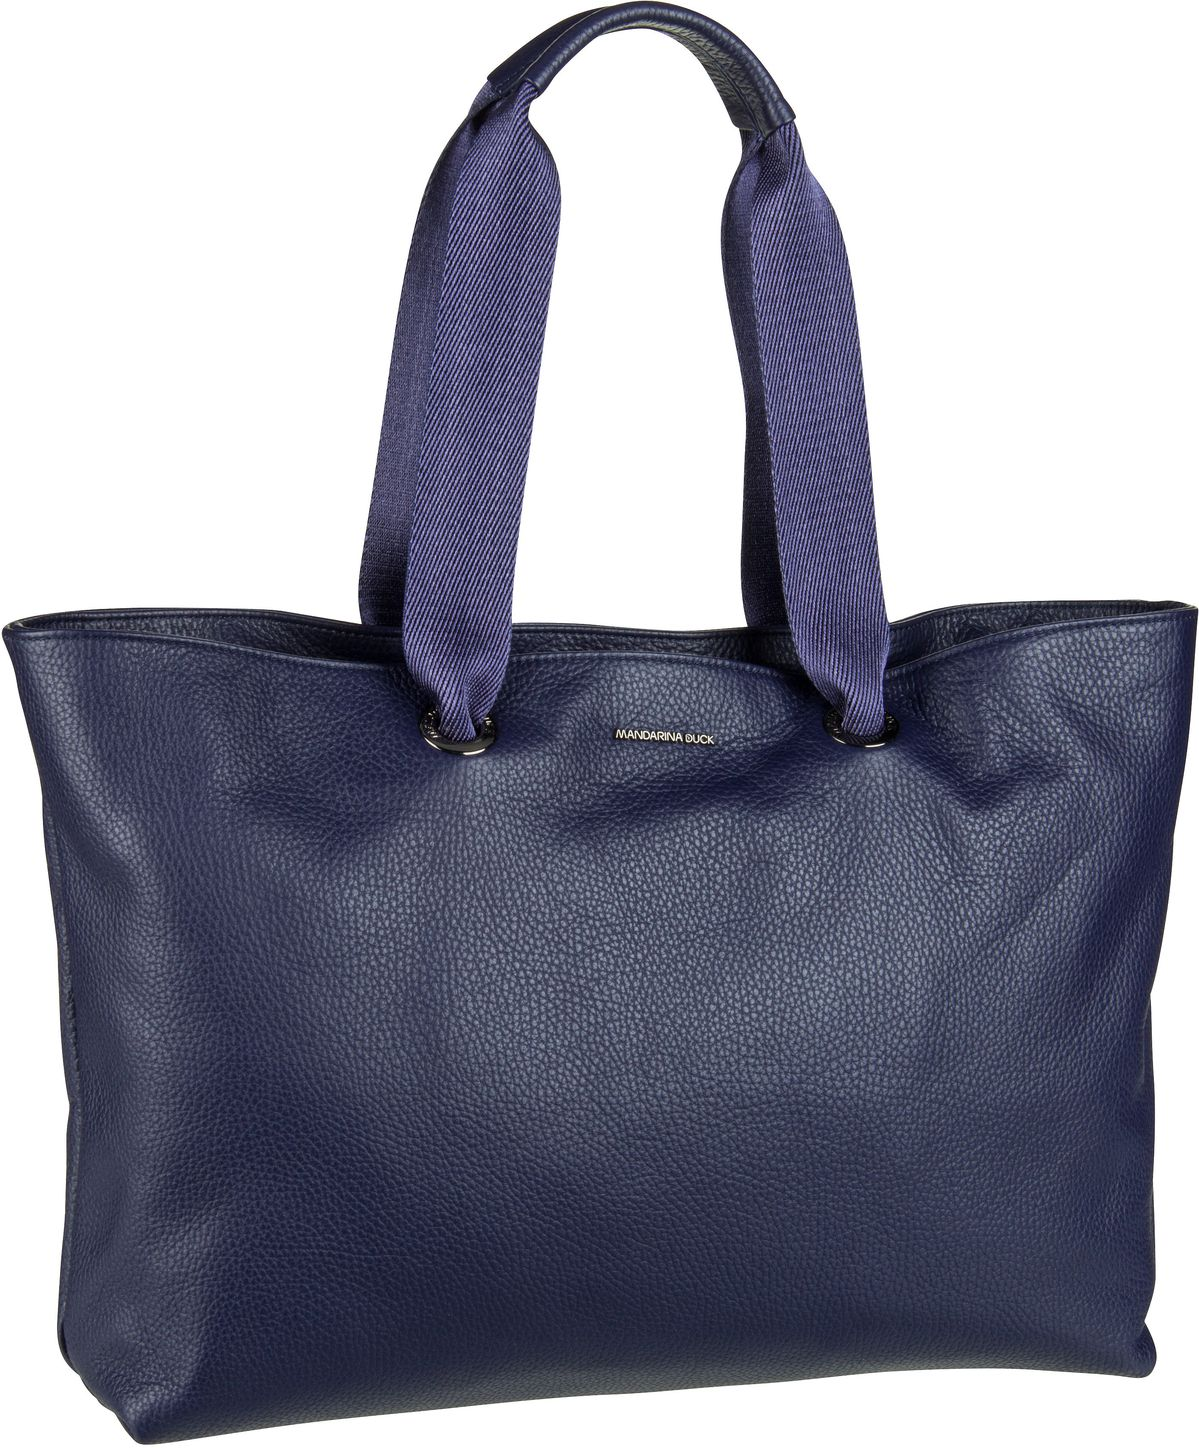 Shopper Mellow Leather Shopper FZT94 Dress Blue